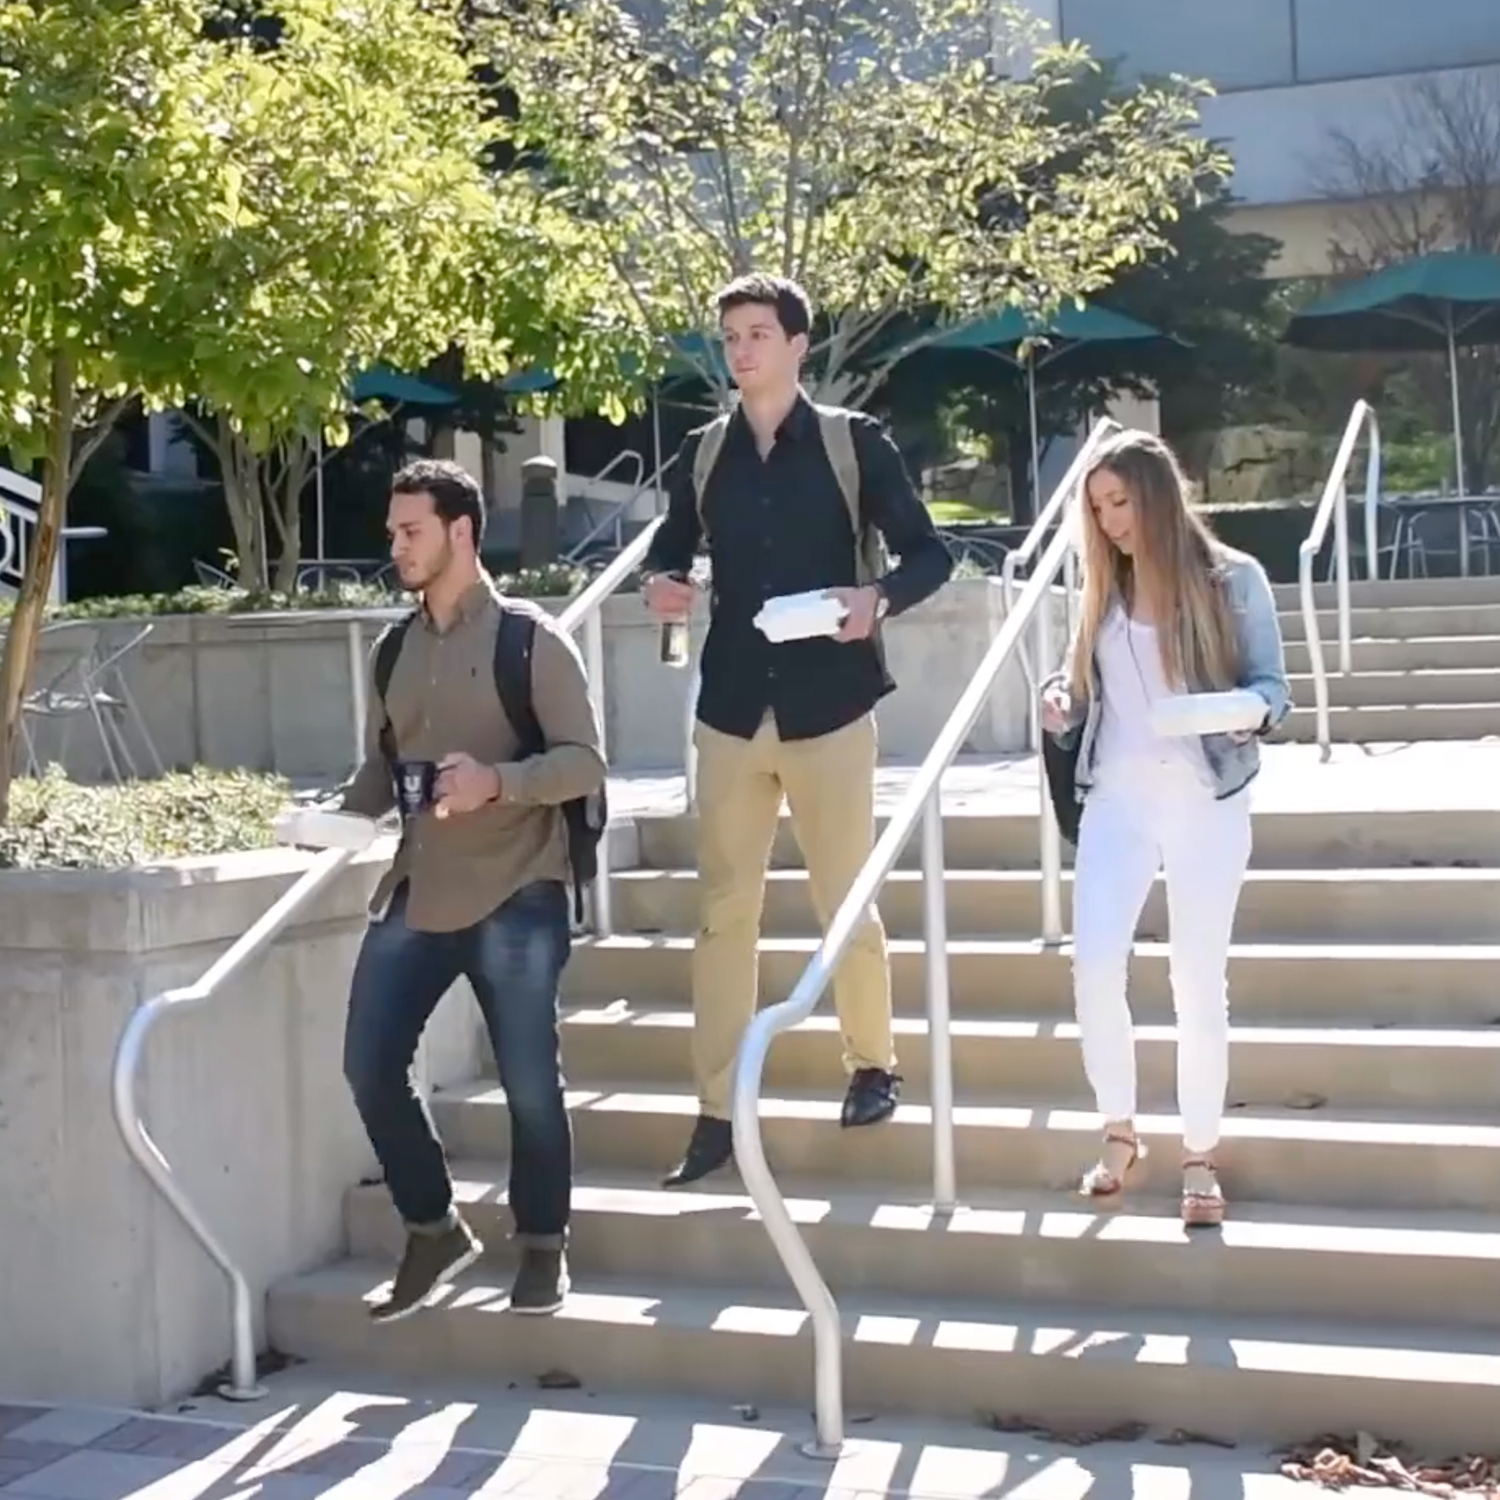 College students walking down steps